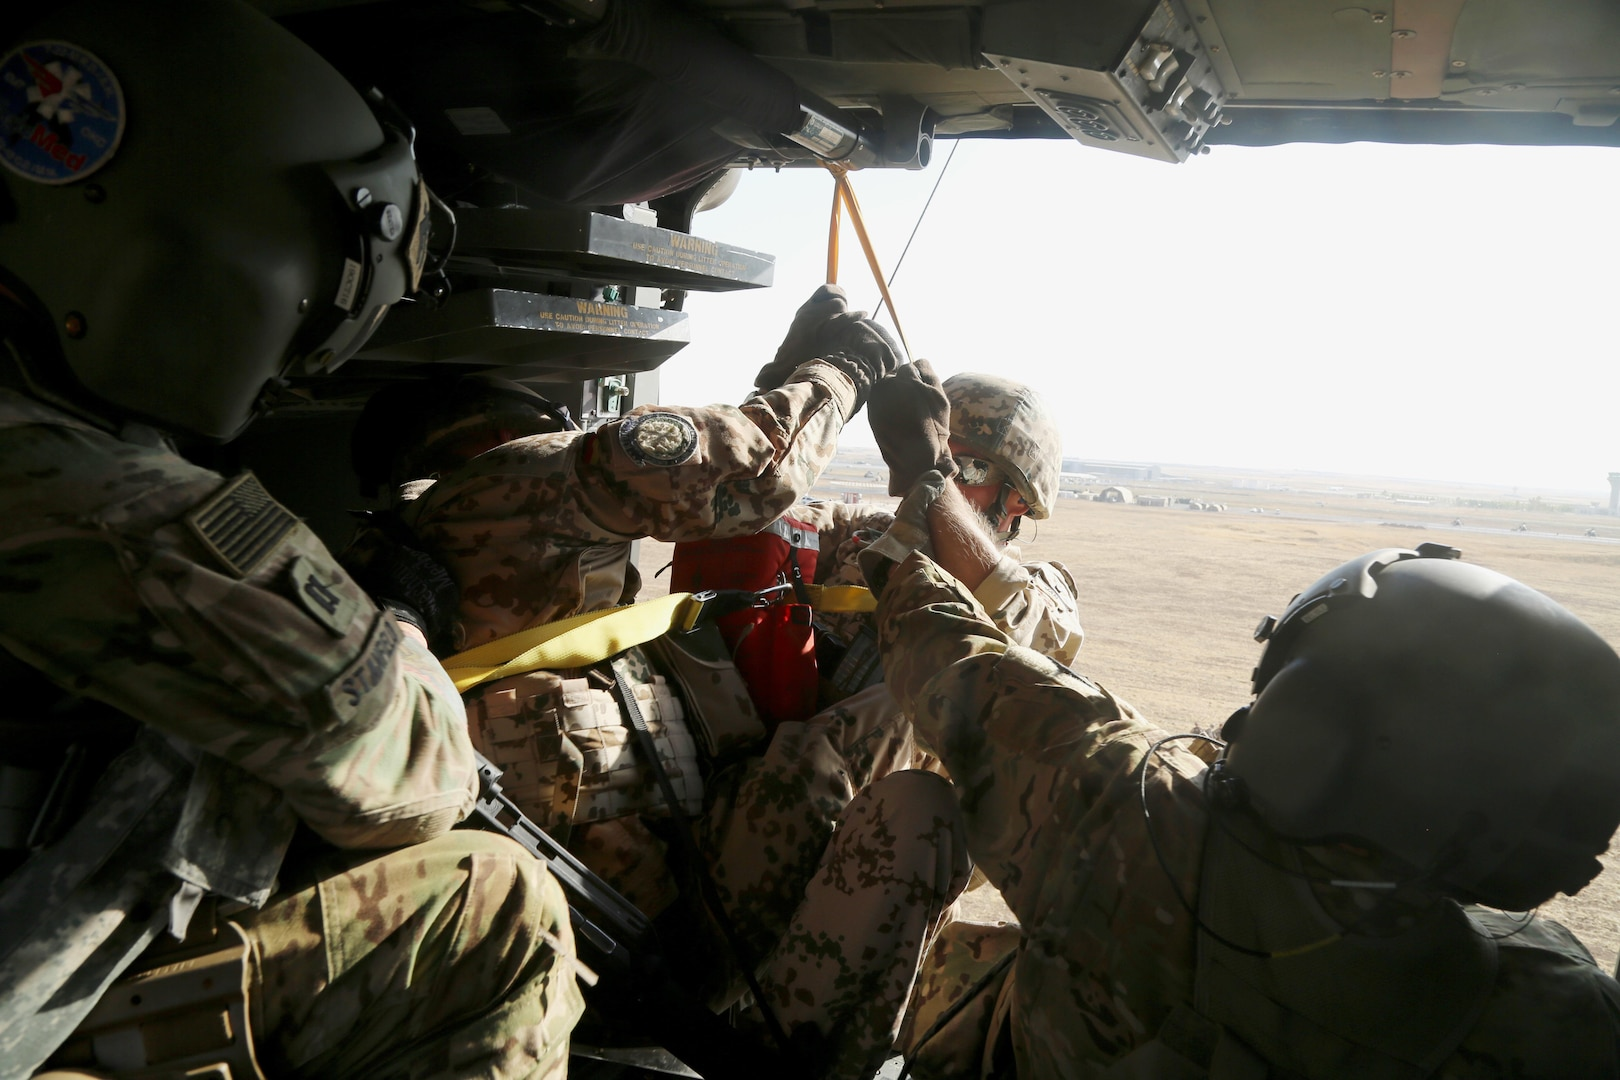 U.S. Army Capt. Ryan Stanfield, a flight nurse, and Sgt. Jared Belisle, a crew chief, both assigned to Company C, 1st General Support Aviation Battalion, 111th Aviation Regiment, Task Force Dragon, pull German soldiers into an HH-60M Black Hawk helicopter during a coalition medevac and hoist training exercise at Erbil, Iraq, Aug. 20, 2016. This training was conducted to teach and familiarize German, Dutch, and Finnish soldiers with U.S. Army medevac equipment and procedures. More than 60 Coalition partners have committed themselves to the goal of eliminating the threat posed by the Islamic State of Iraq and the Levant and have contributed in various capacities to the effort to combat ISIL.